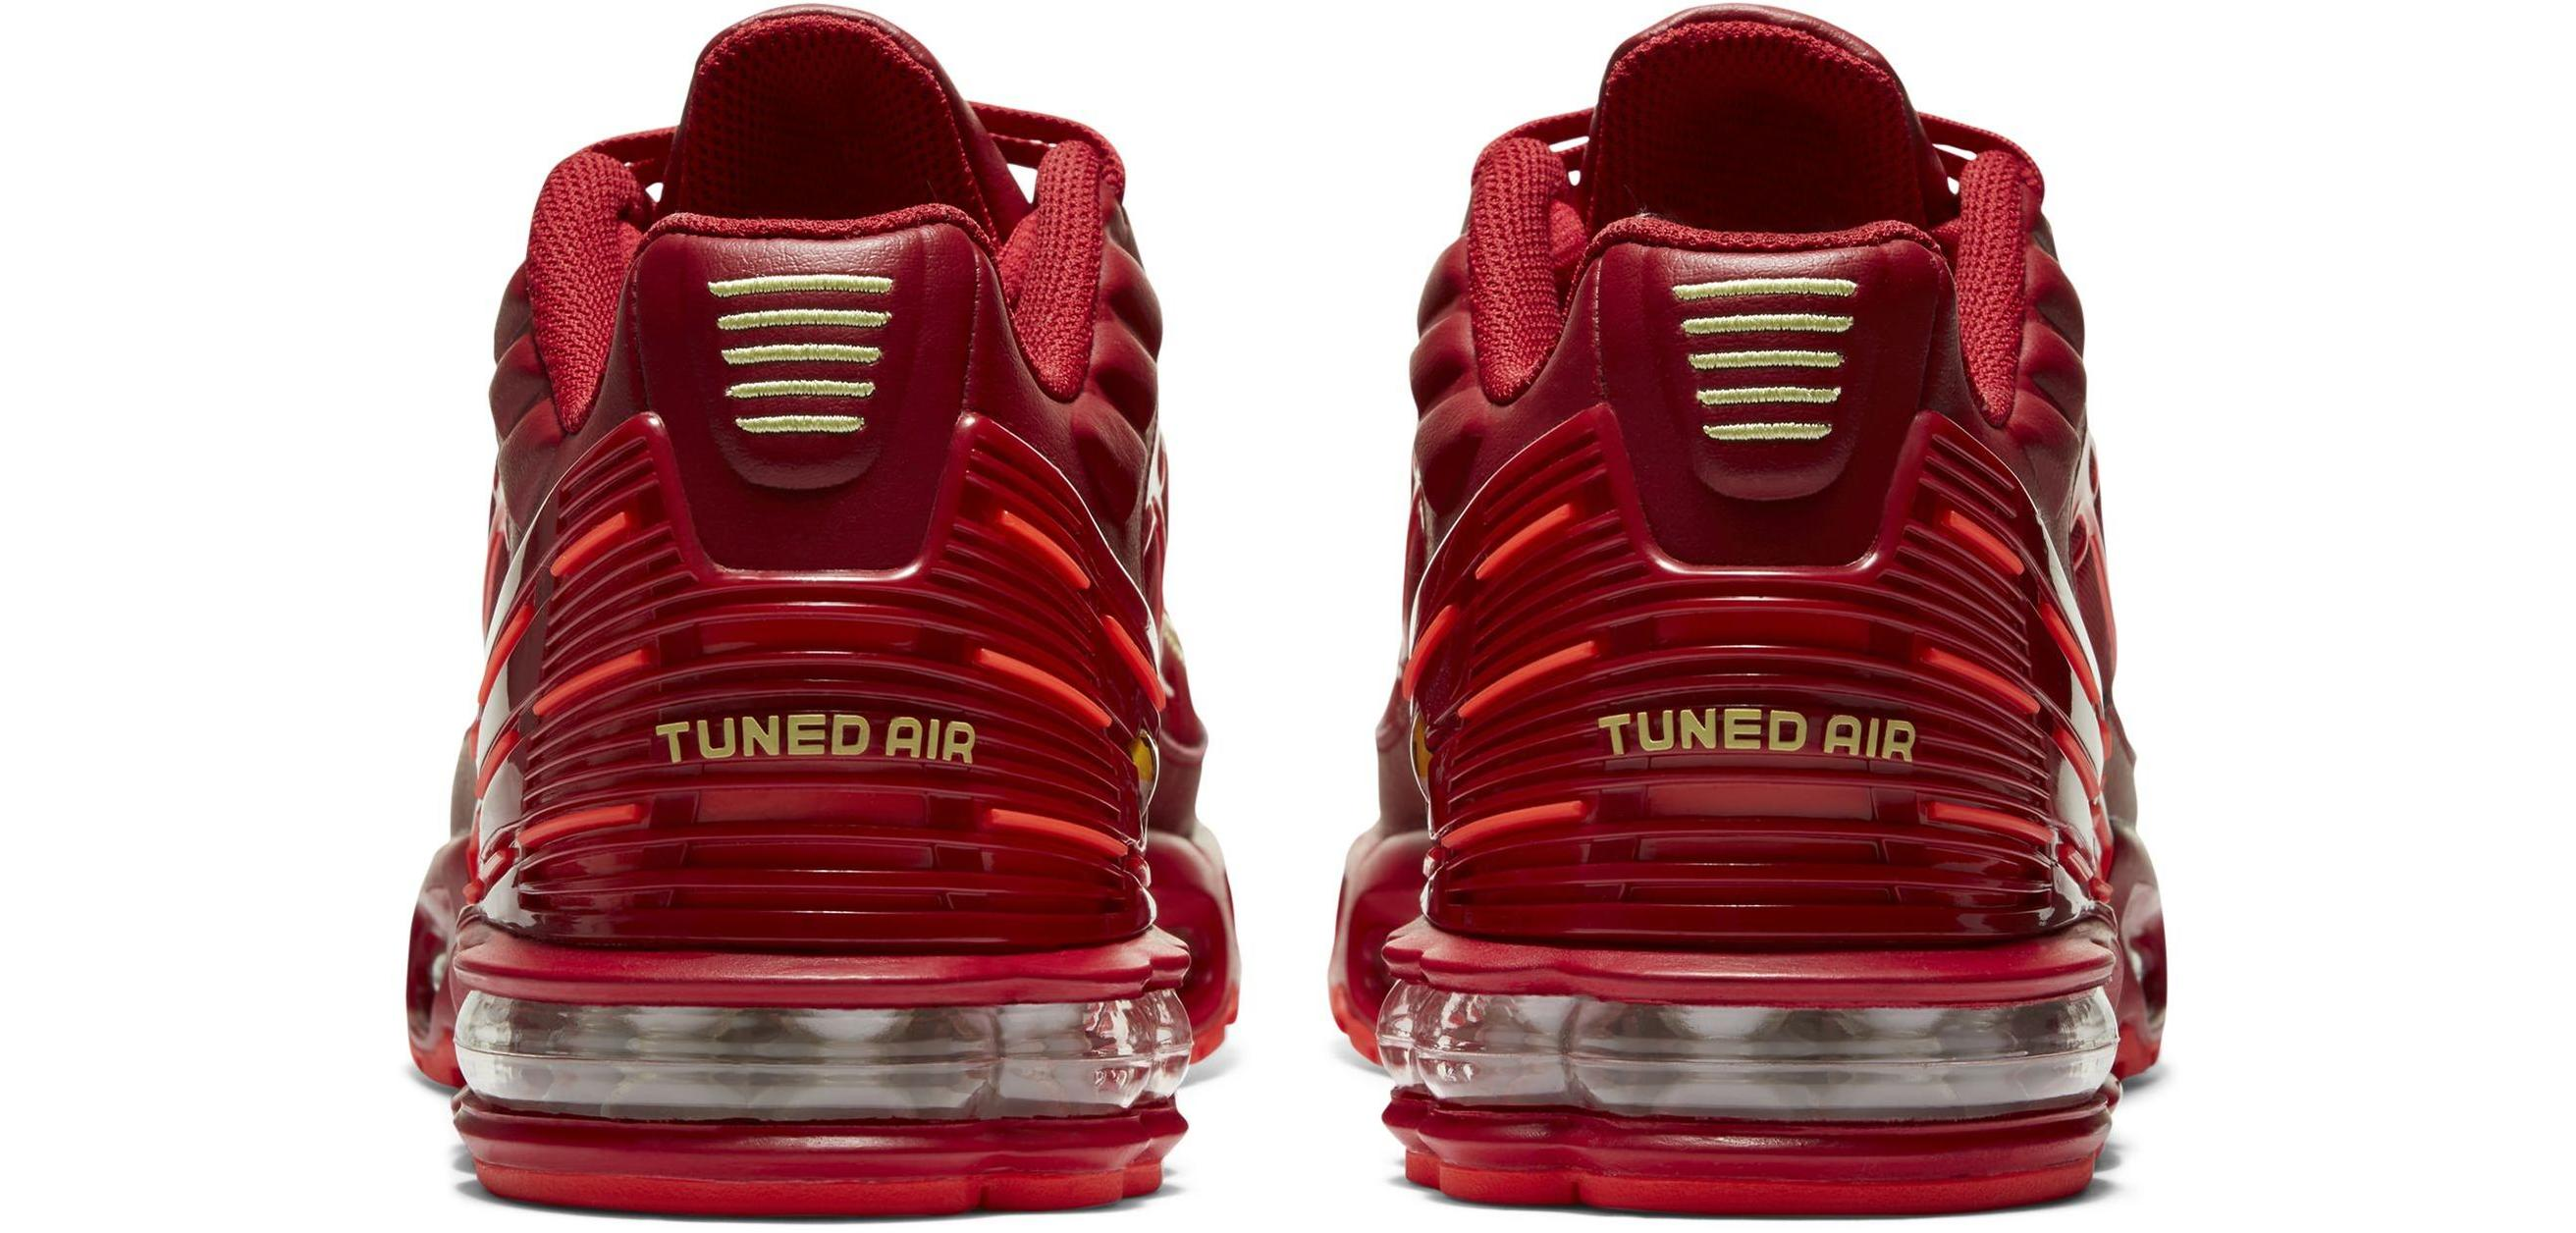 Nike Air Max Plus 3 Gym Red/Bright Crimson/White/Limelight